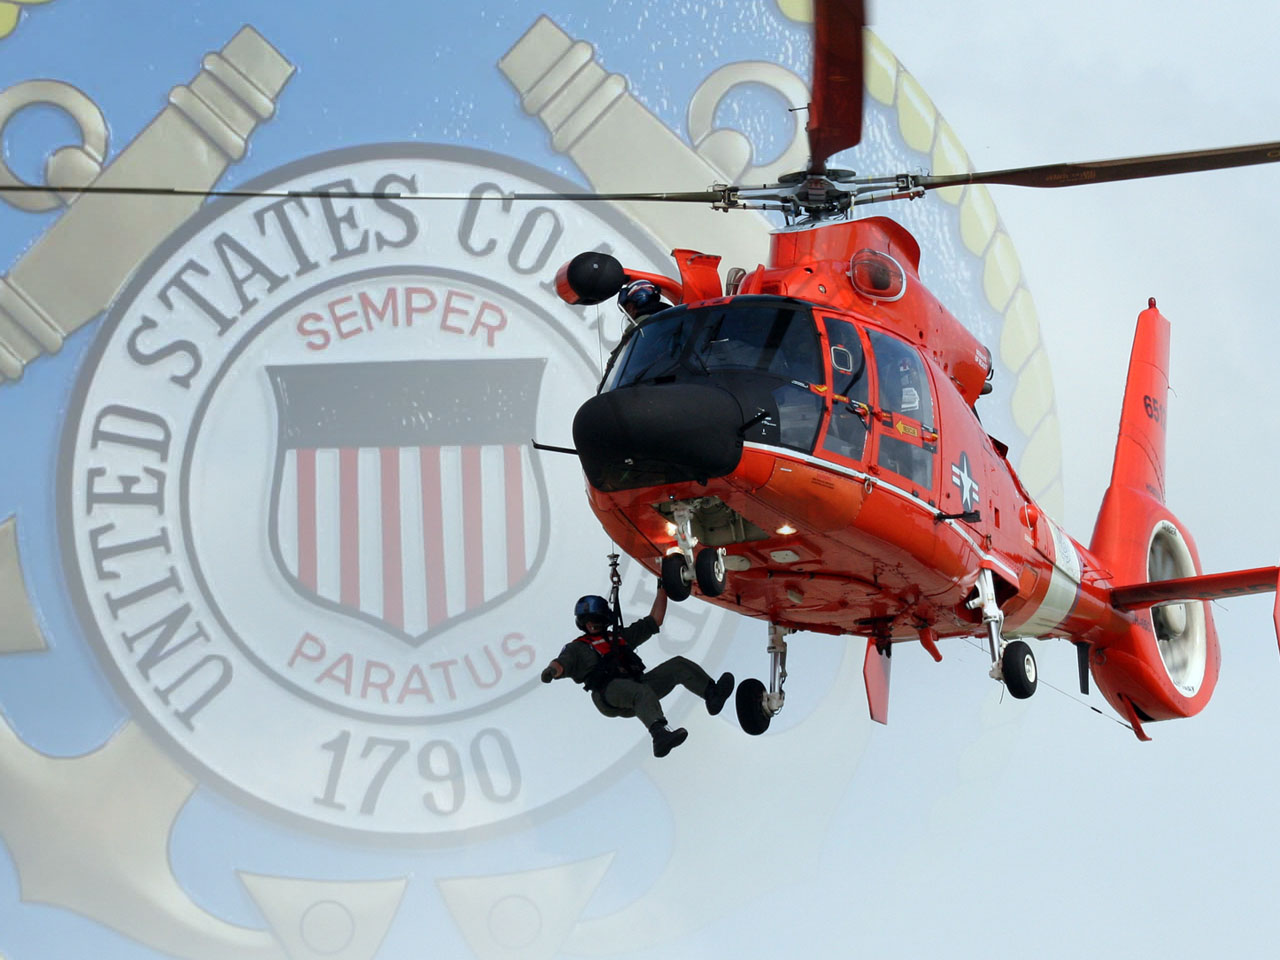 1 dead after Coast Guard helicopter crash in Ala. | WBRZ News 2 Louisiana : Baton Rouge, LA |